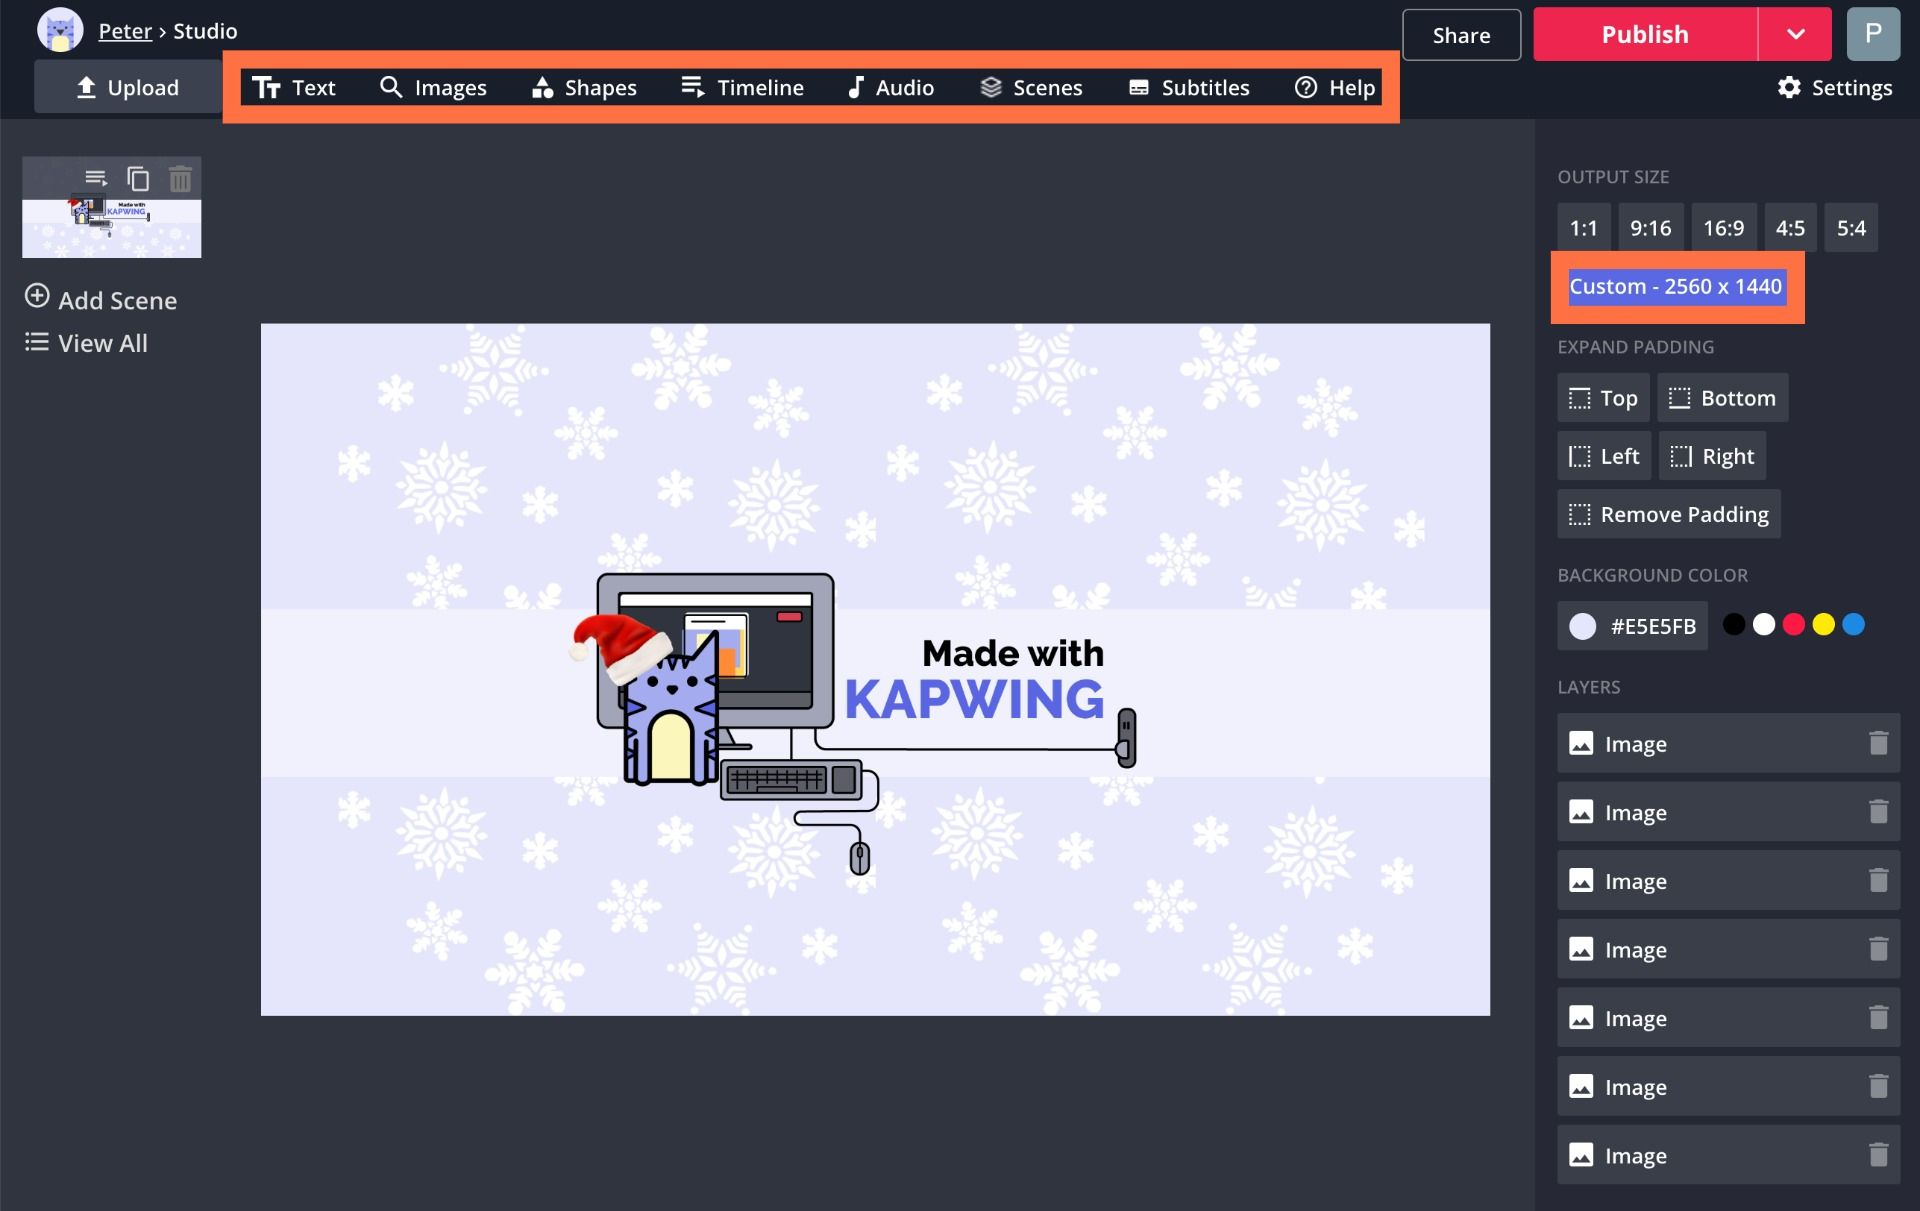 A screenshot of the Kapwing Studio, pointing out image editing options.